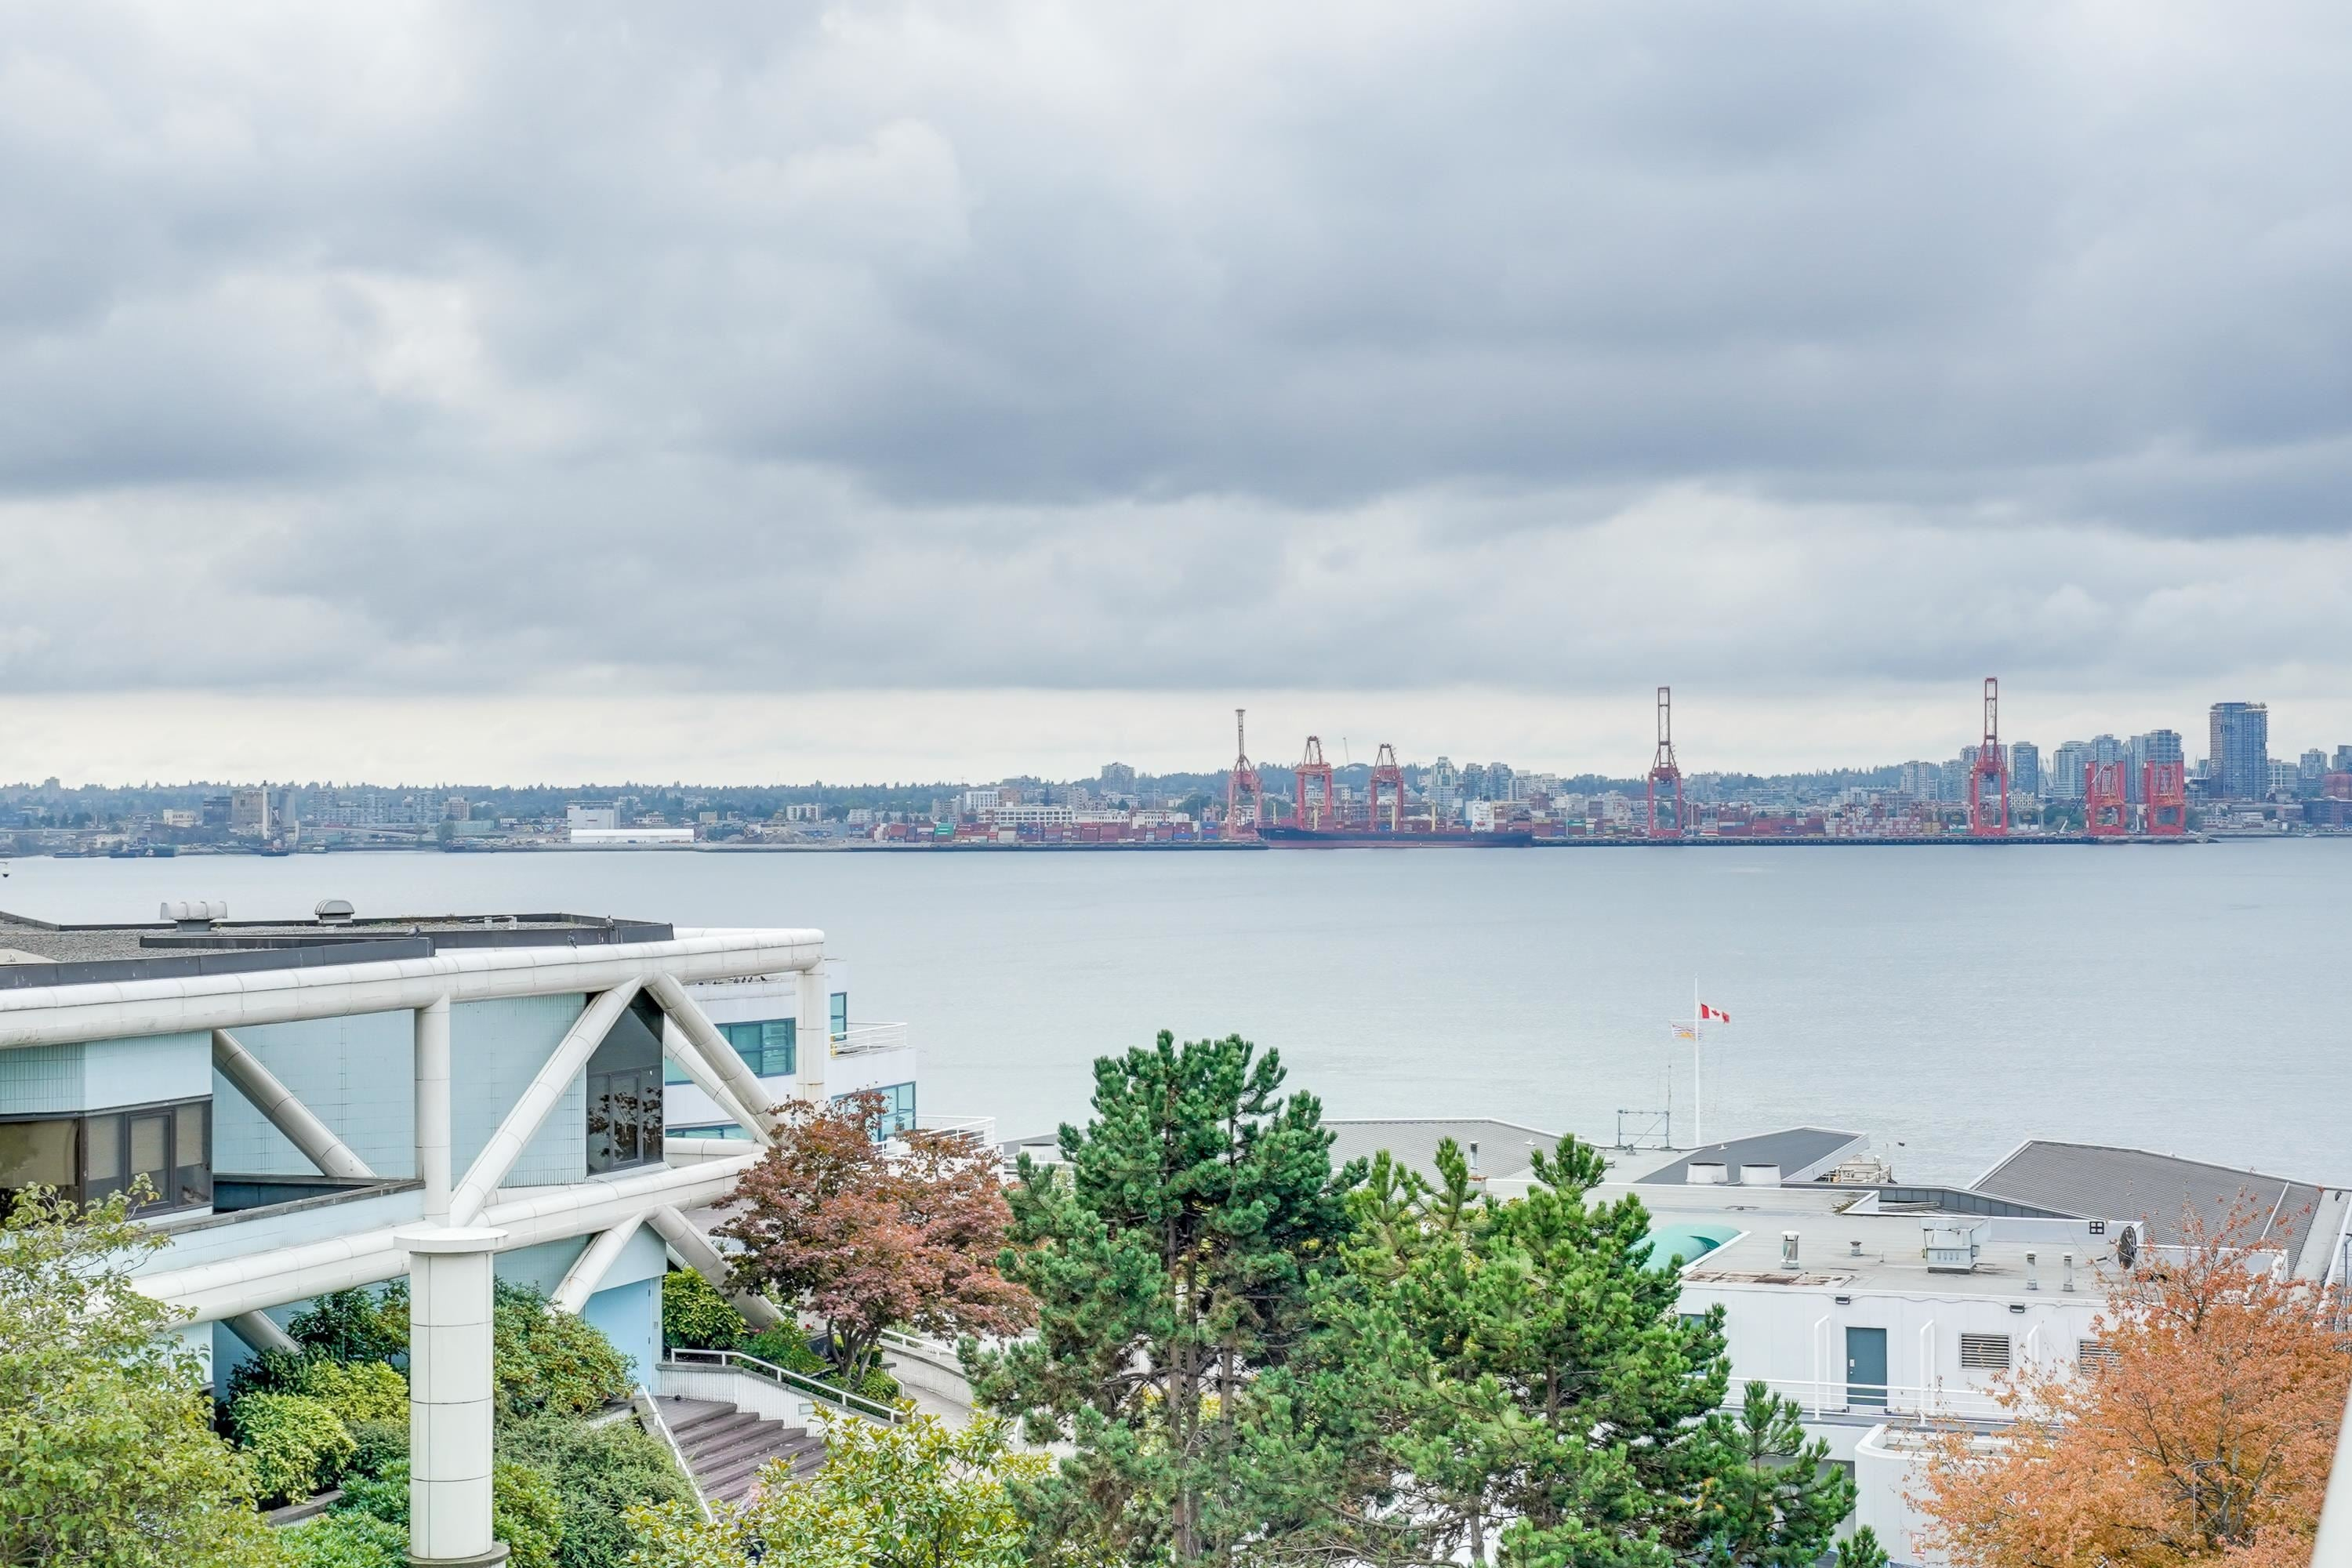 405 168 CHADWICK COURT - Lower Lonsdale Apartment/Condo for sale, 3 Bedrooms (R2619951) - #22